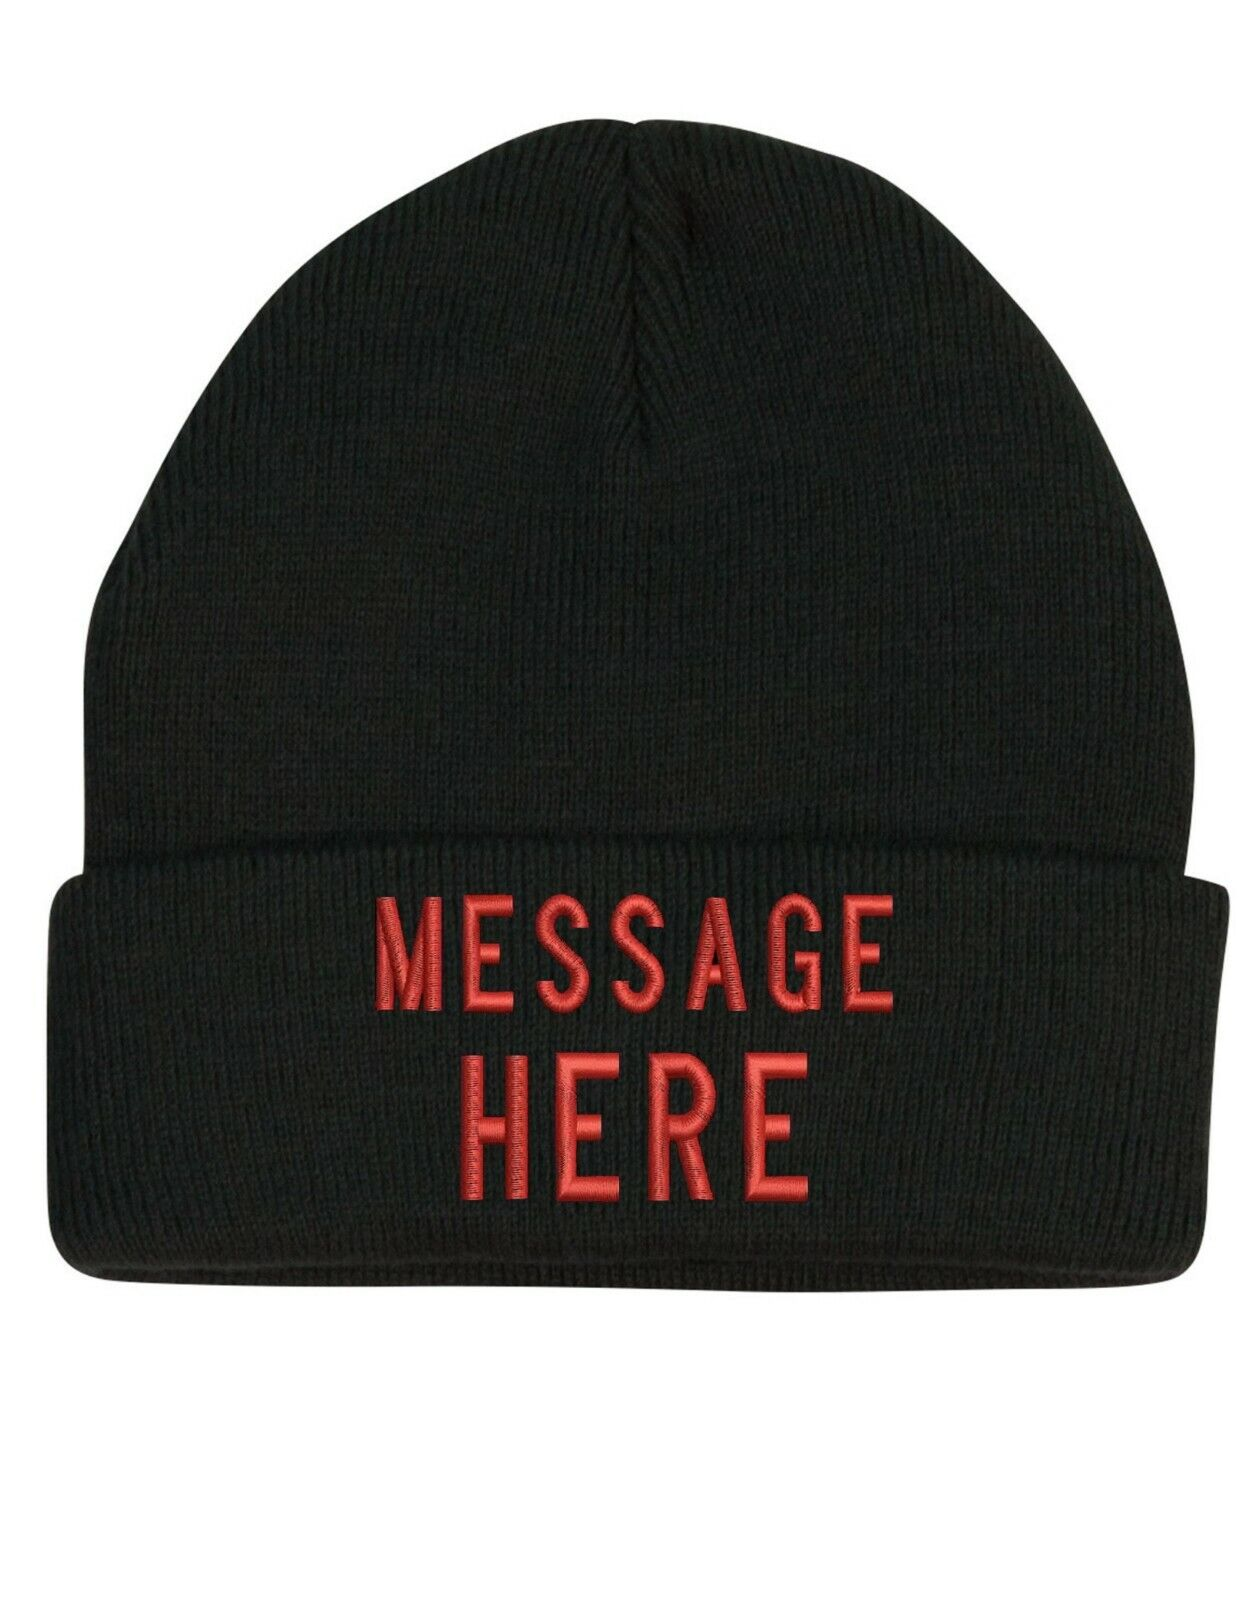 Black winter custom beanie with the folded part